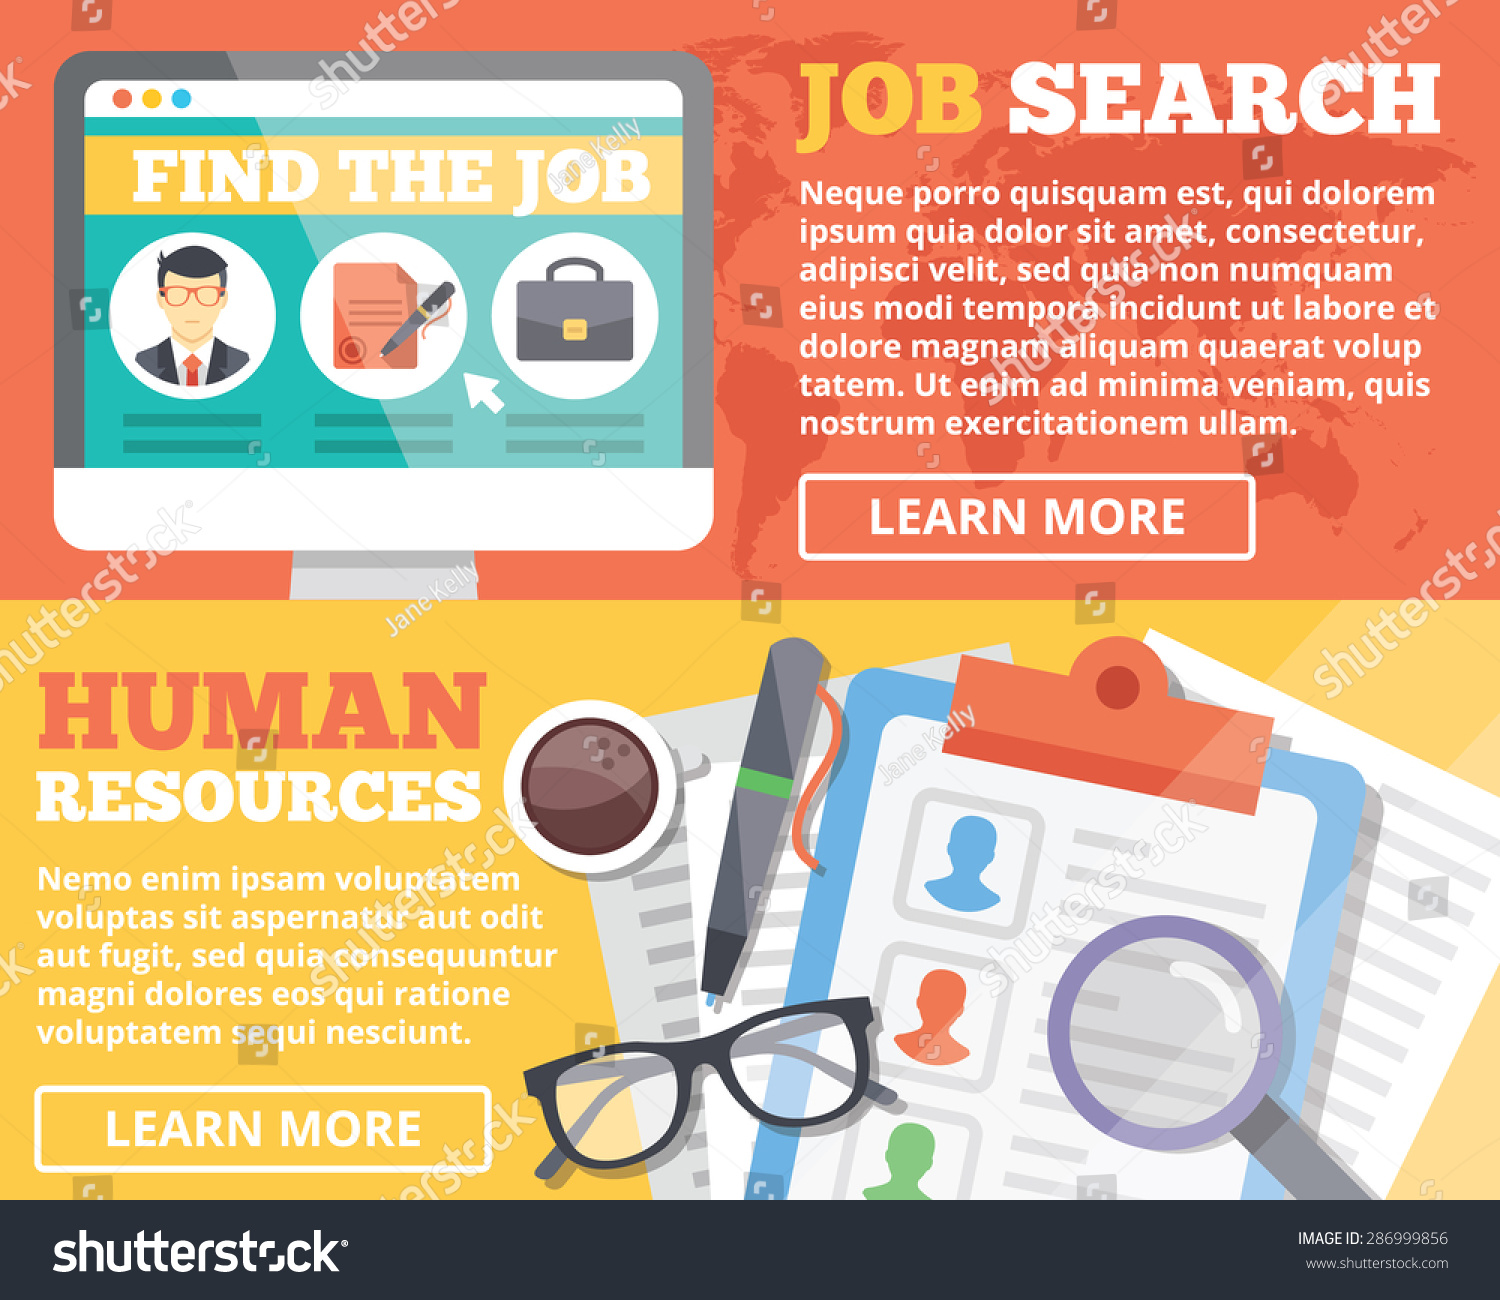 job search human resources flat illustration stock vector job search and human resources flat illustration concepts set flat design concepts for web banners